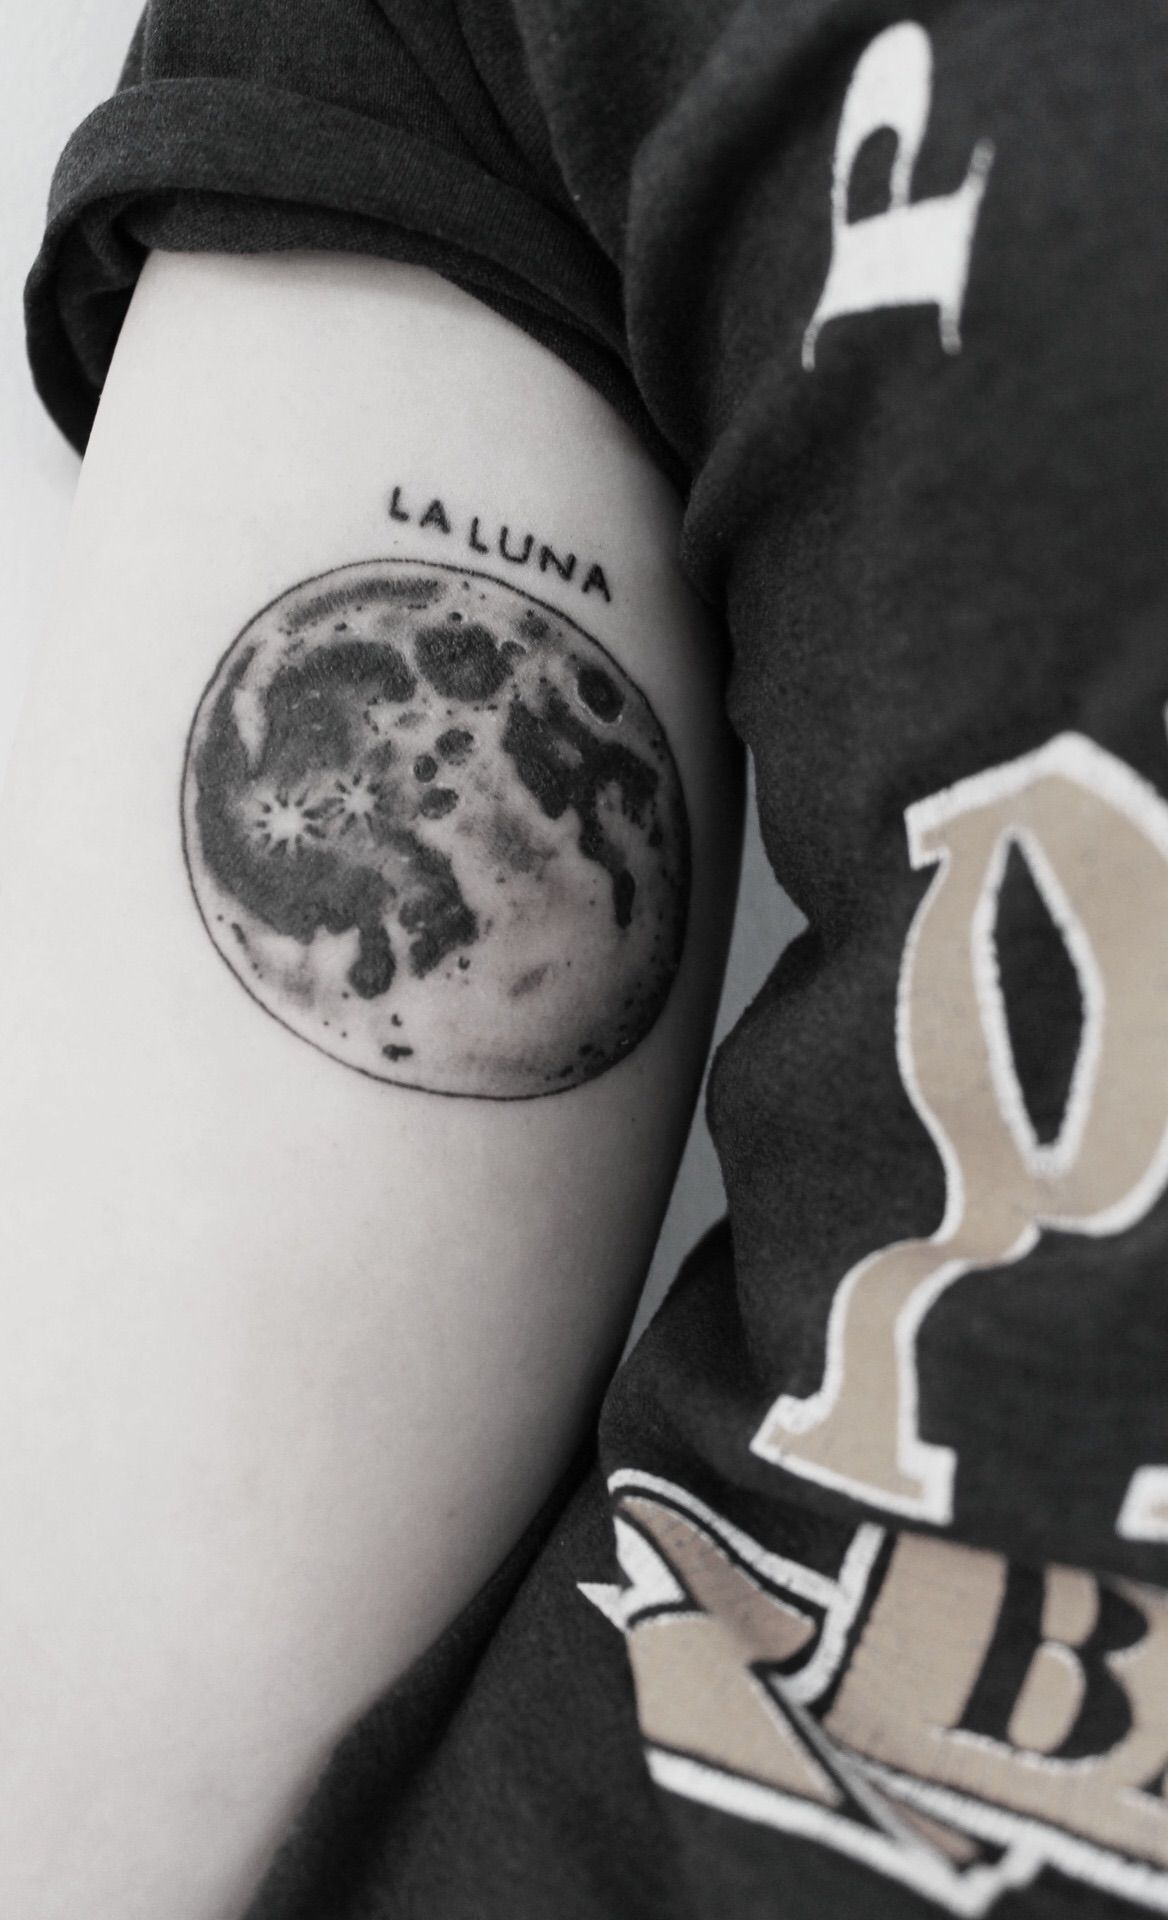 Pin on Tattoo Ideas and Inspiration